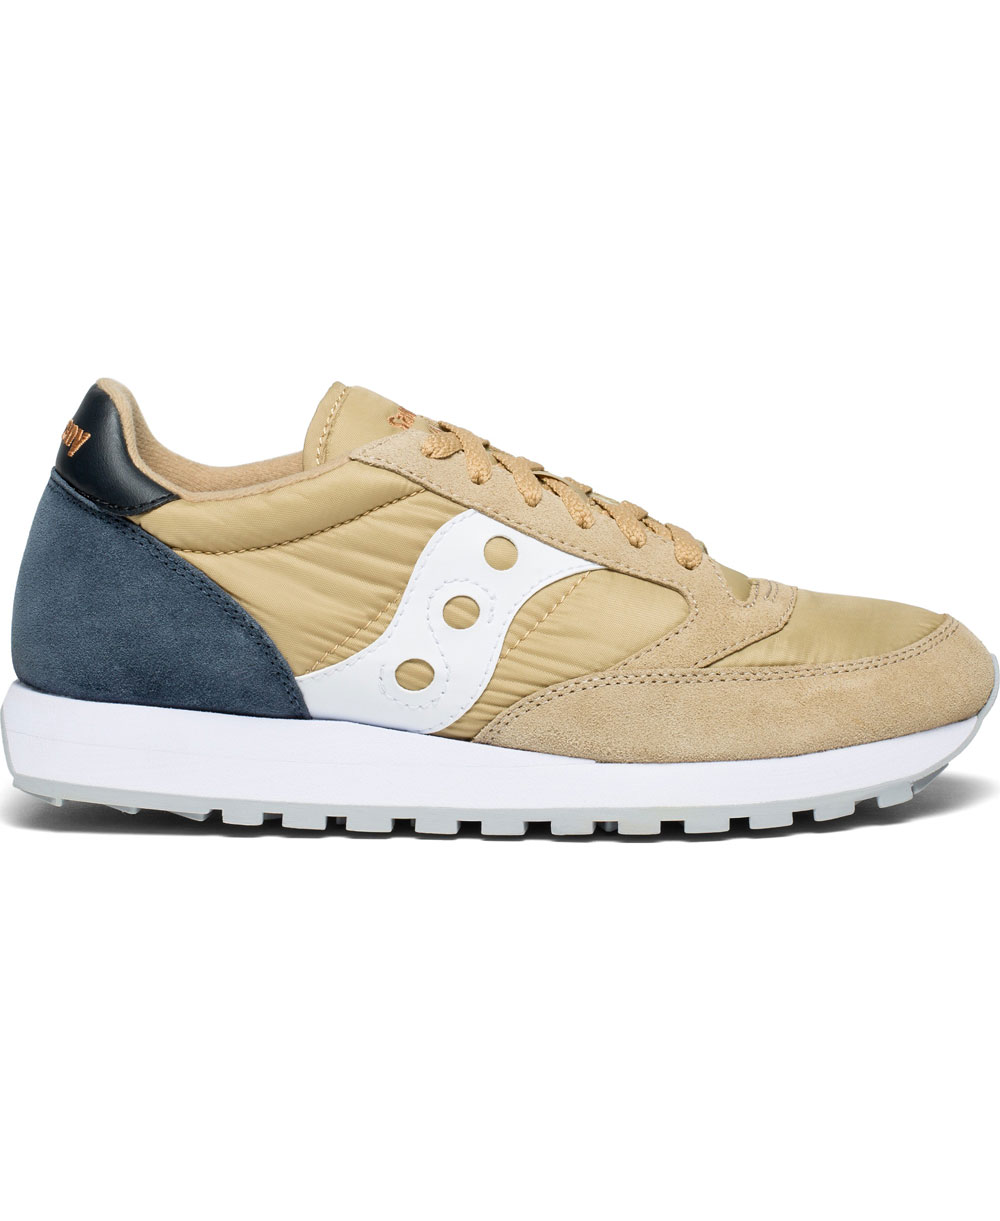 size 40 1baf4 23343 Jazz Original Scarpe Sneakers Uomo Tan/Navy